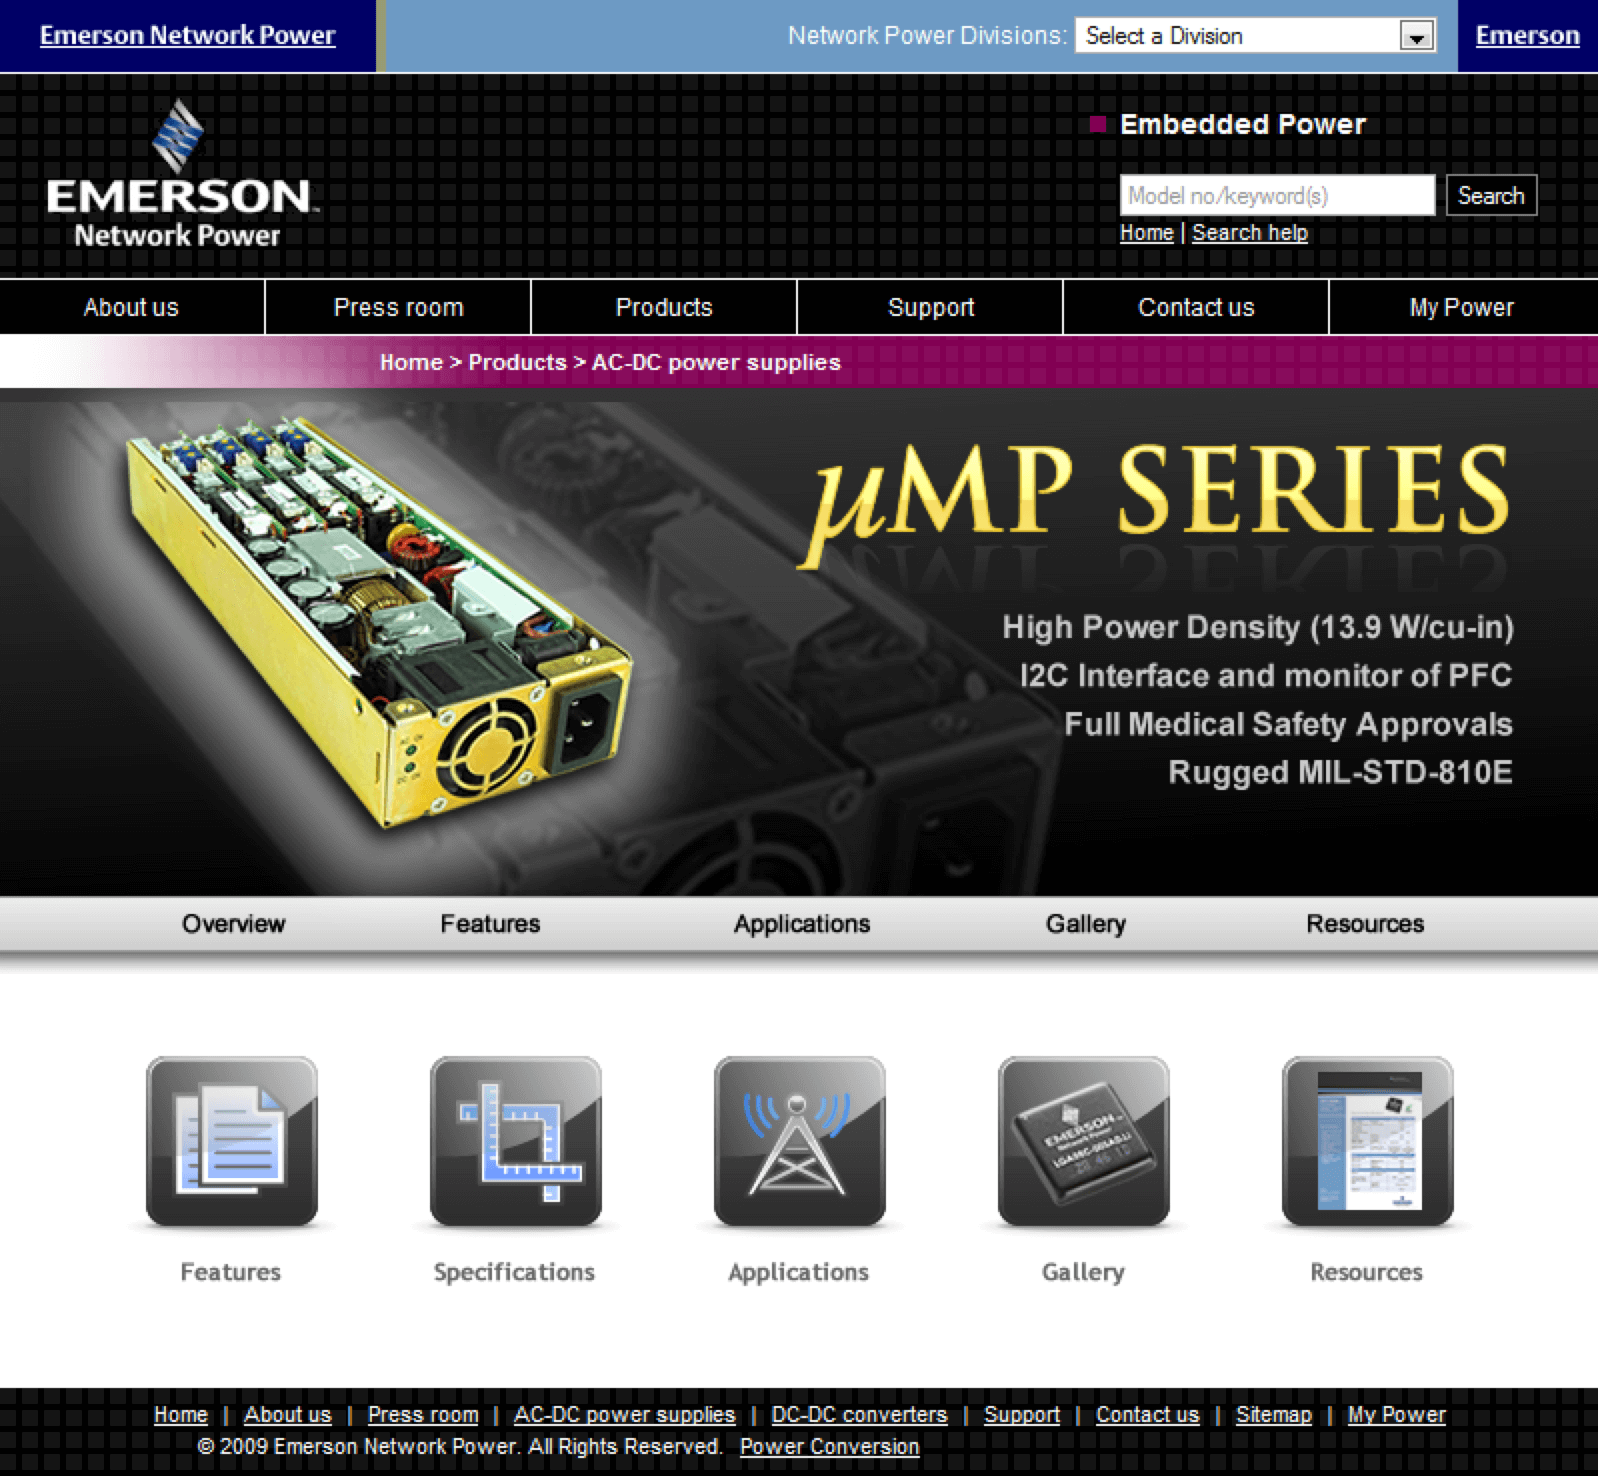 Emerson-UMP-Power-Supplies-Website-Design-Conference-Roadshow